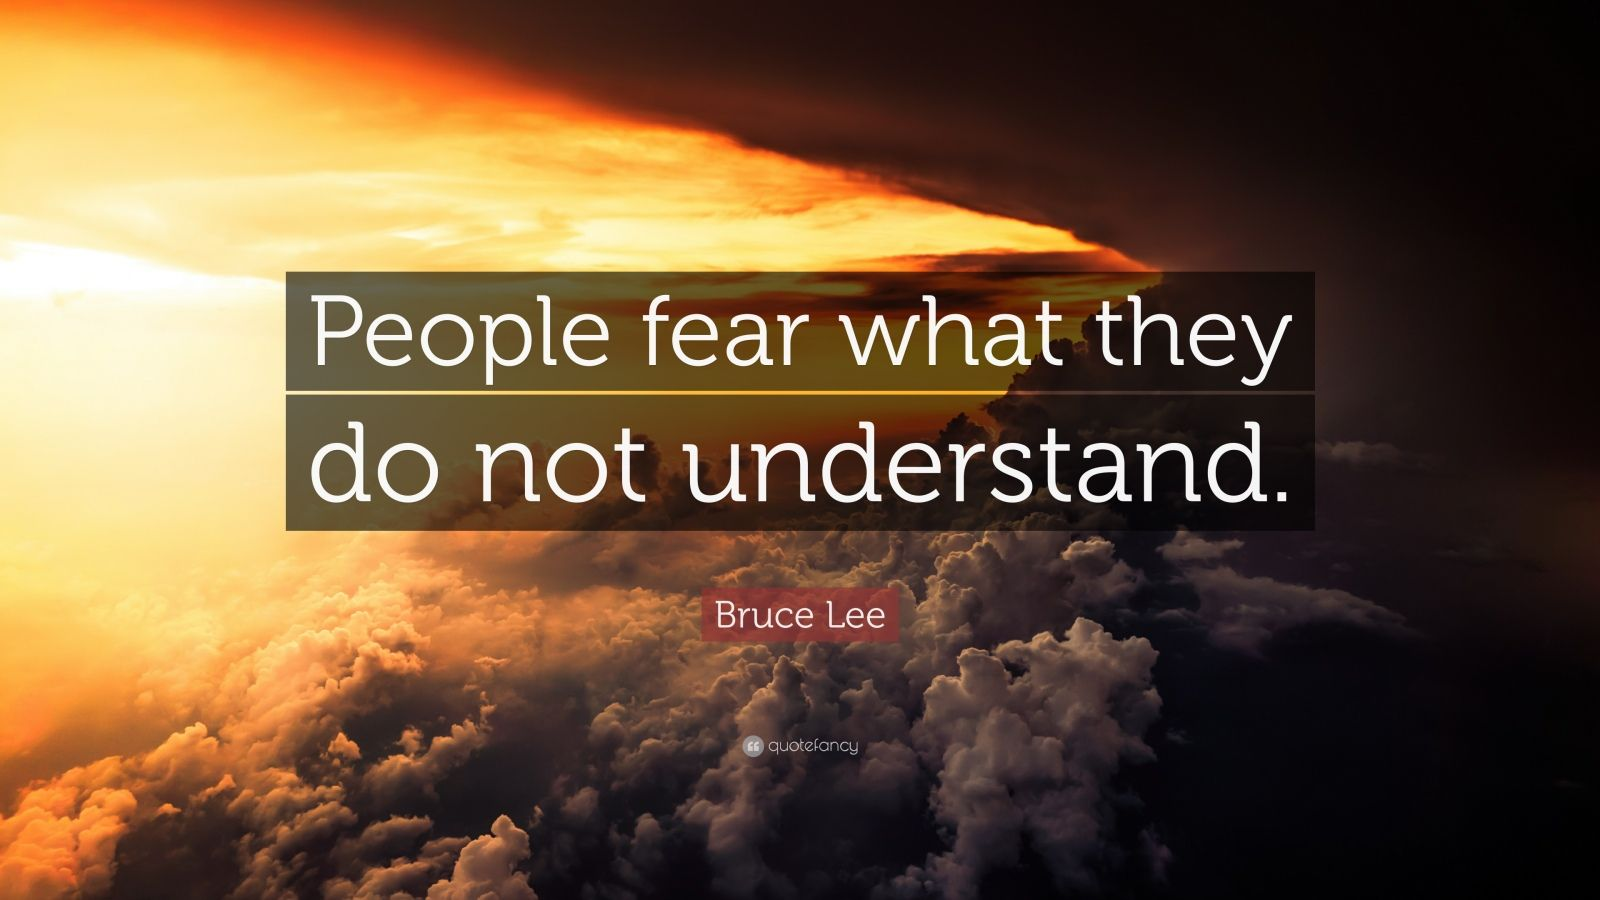 Bill Gates Quotes On Success Wallpaper Bruce Lee Quote People Fear What They Do Not Understand